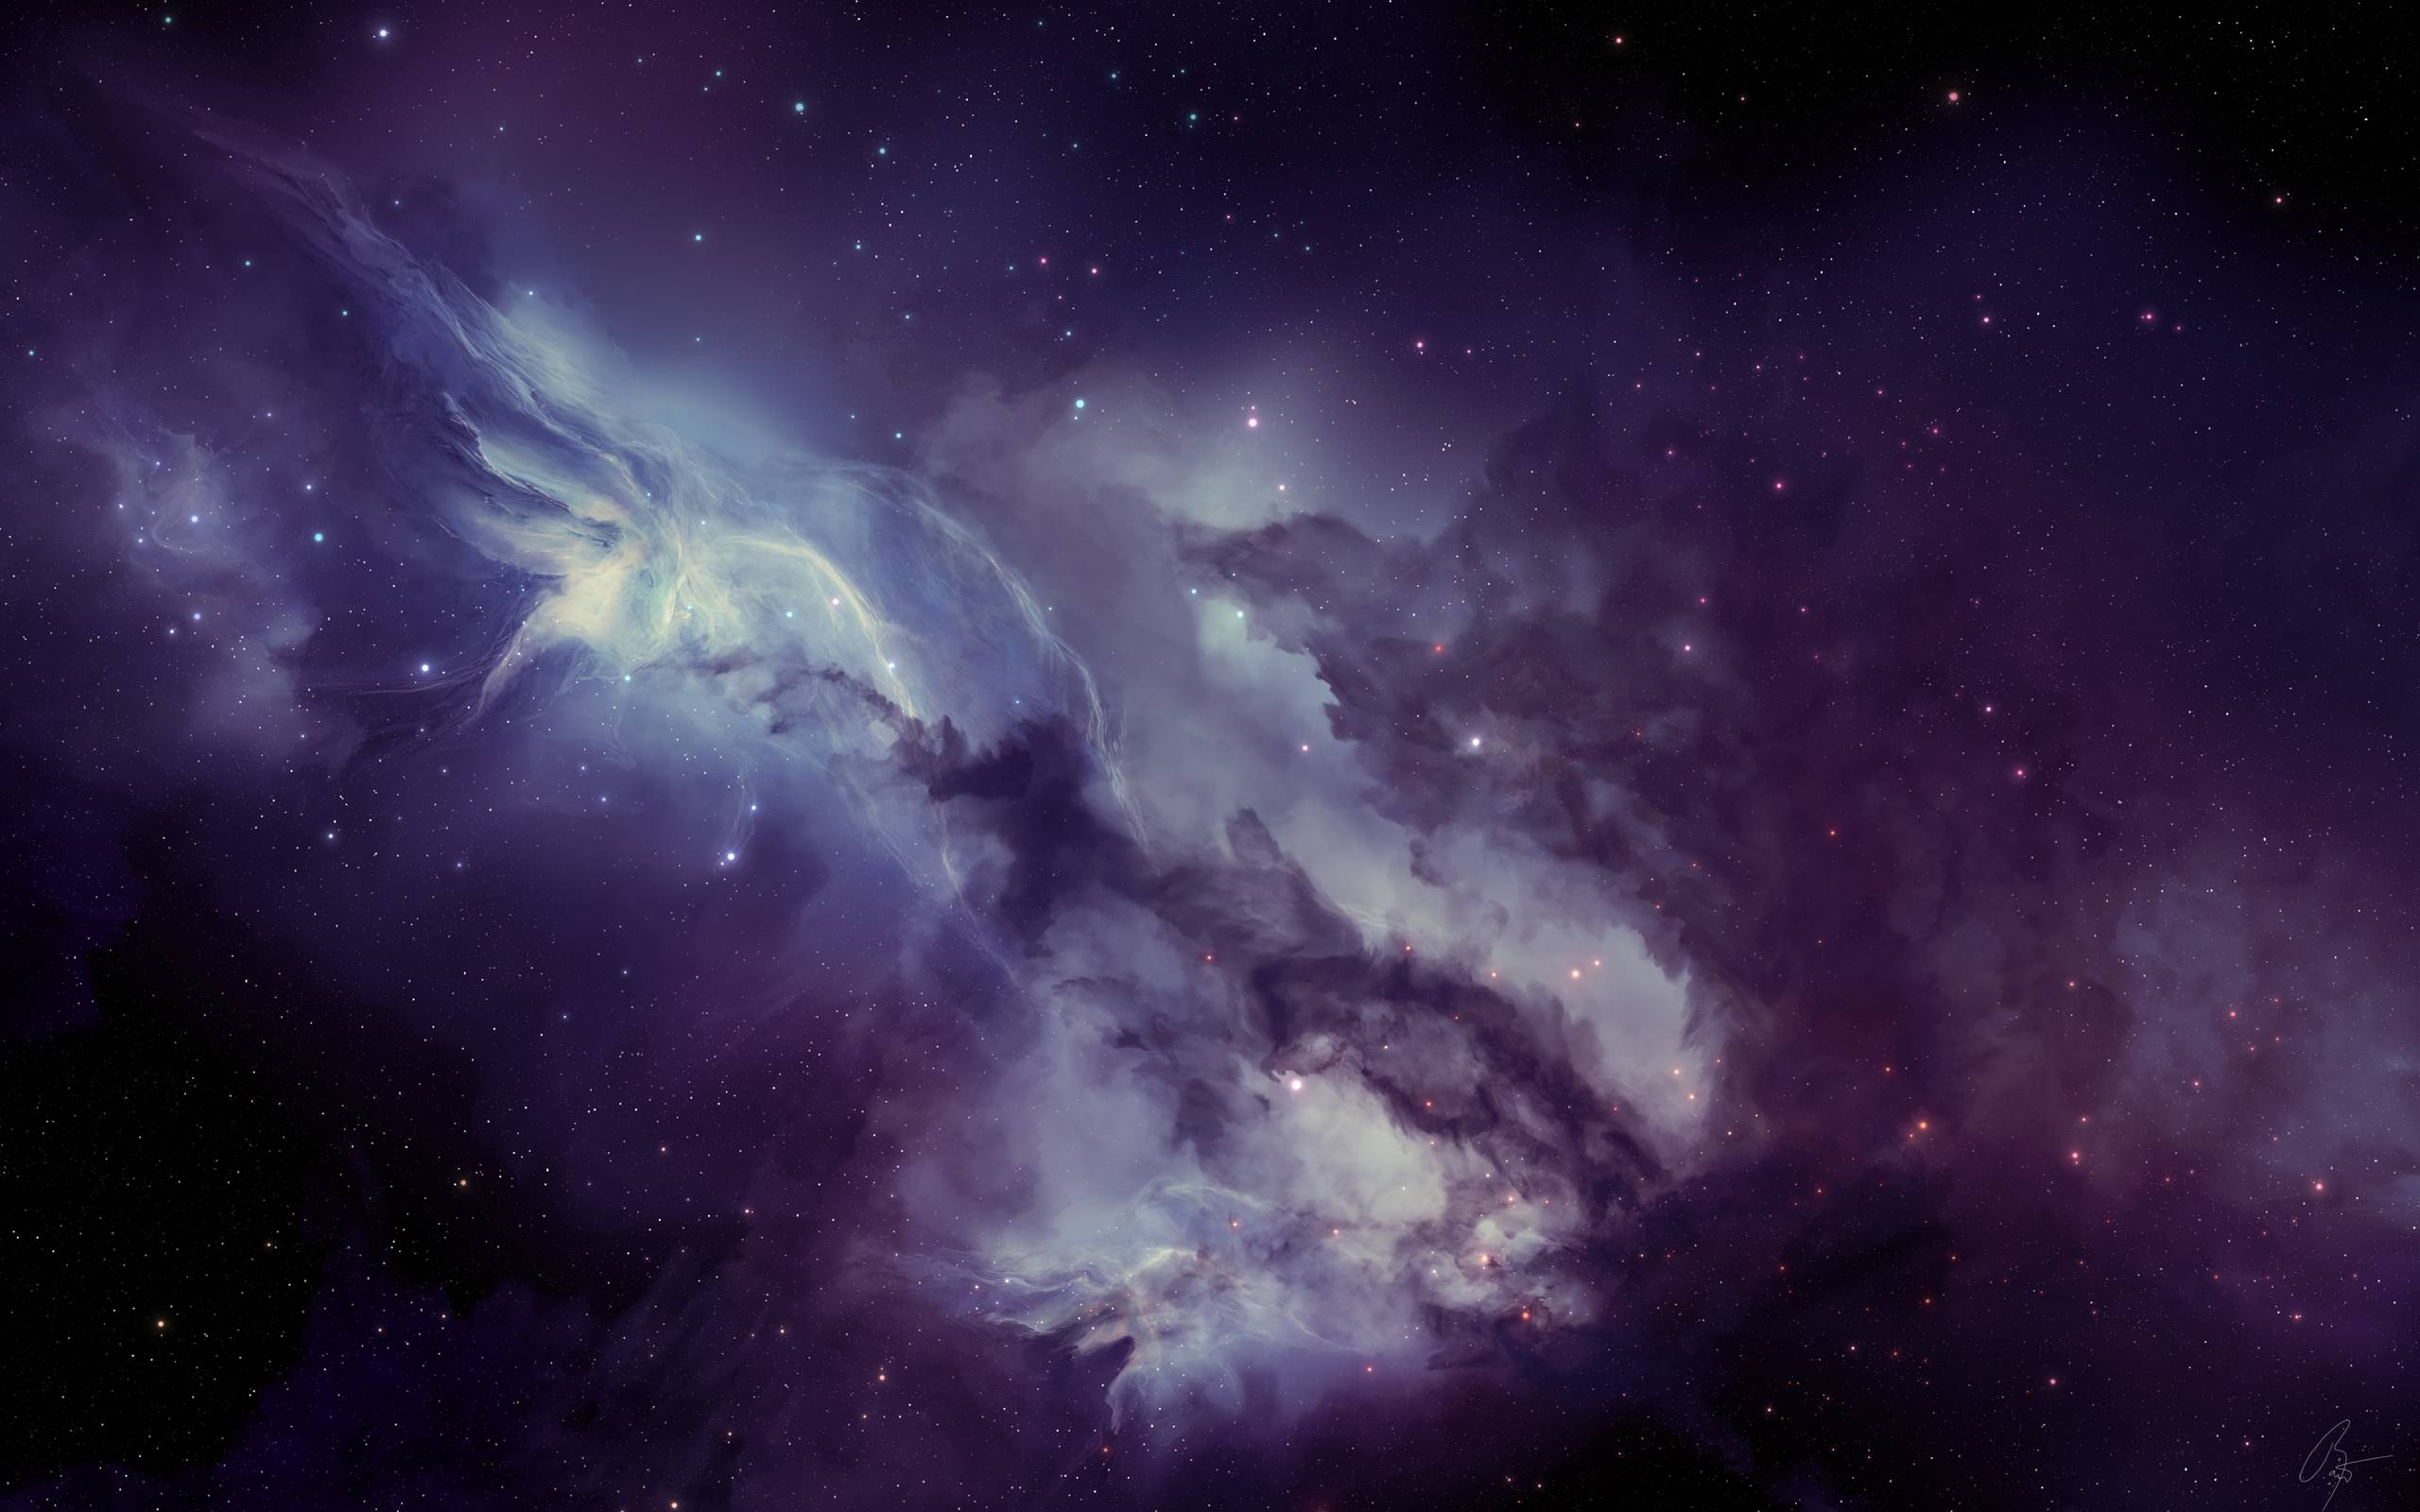 Galaxy Space Wallpaper For Android: Purple Galaxy Wallpapers